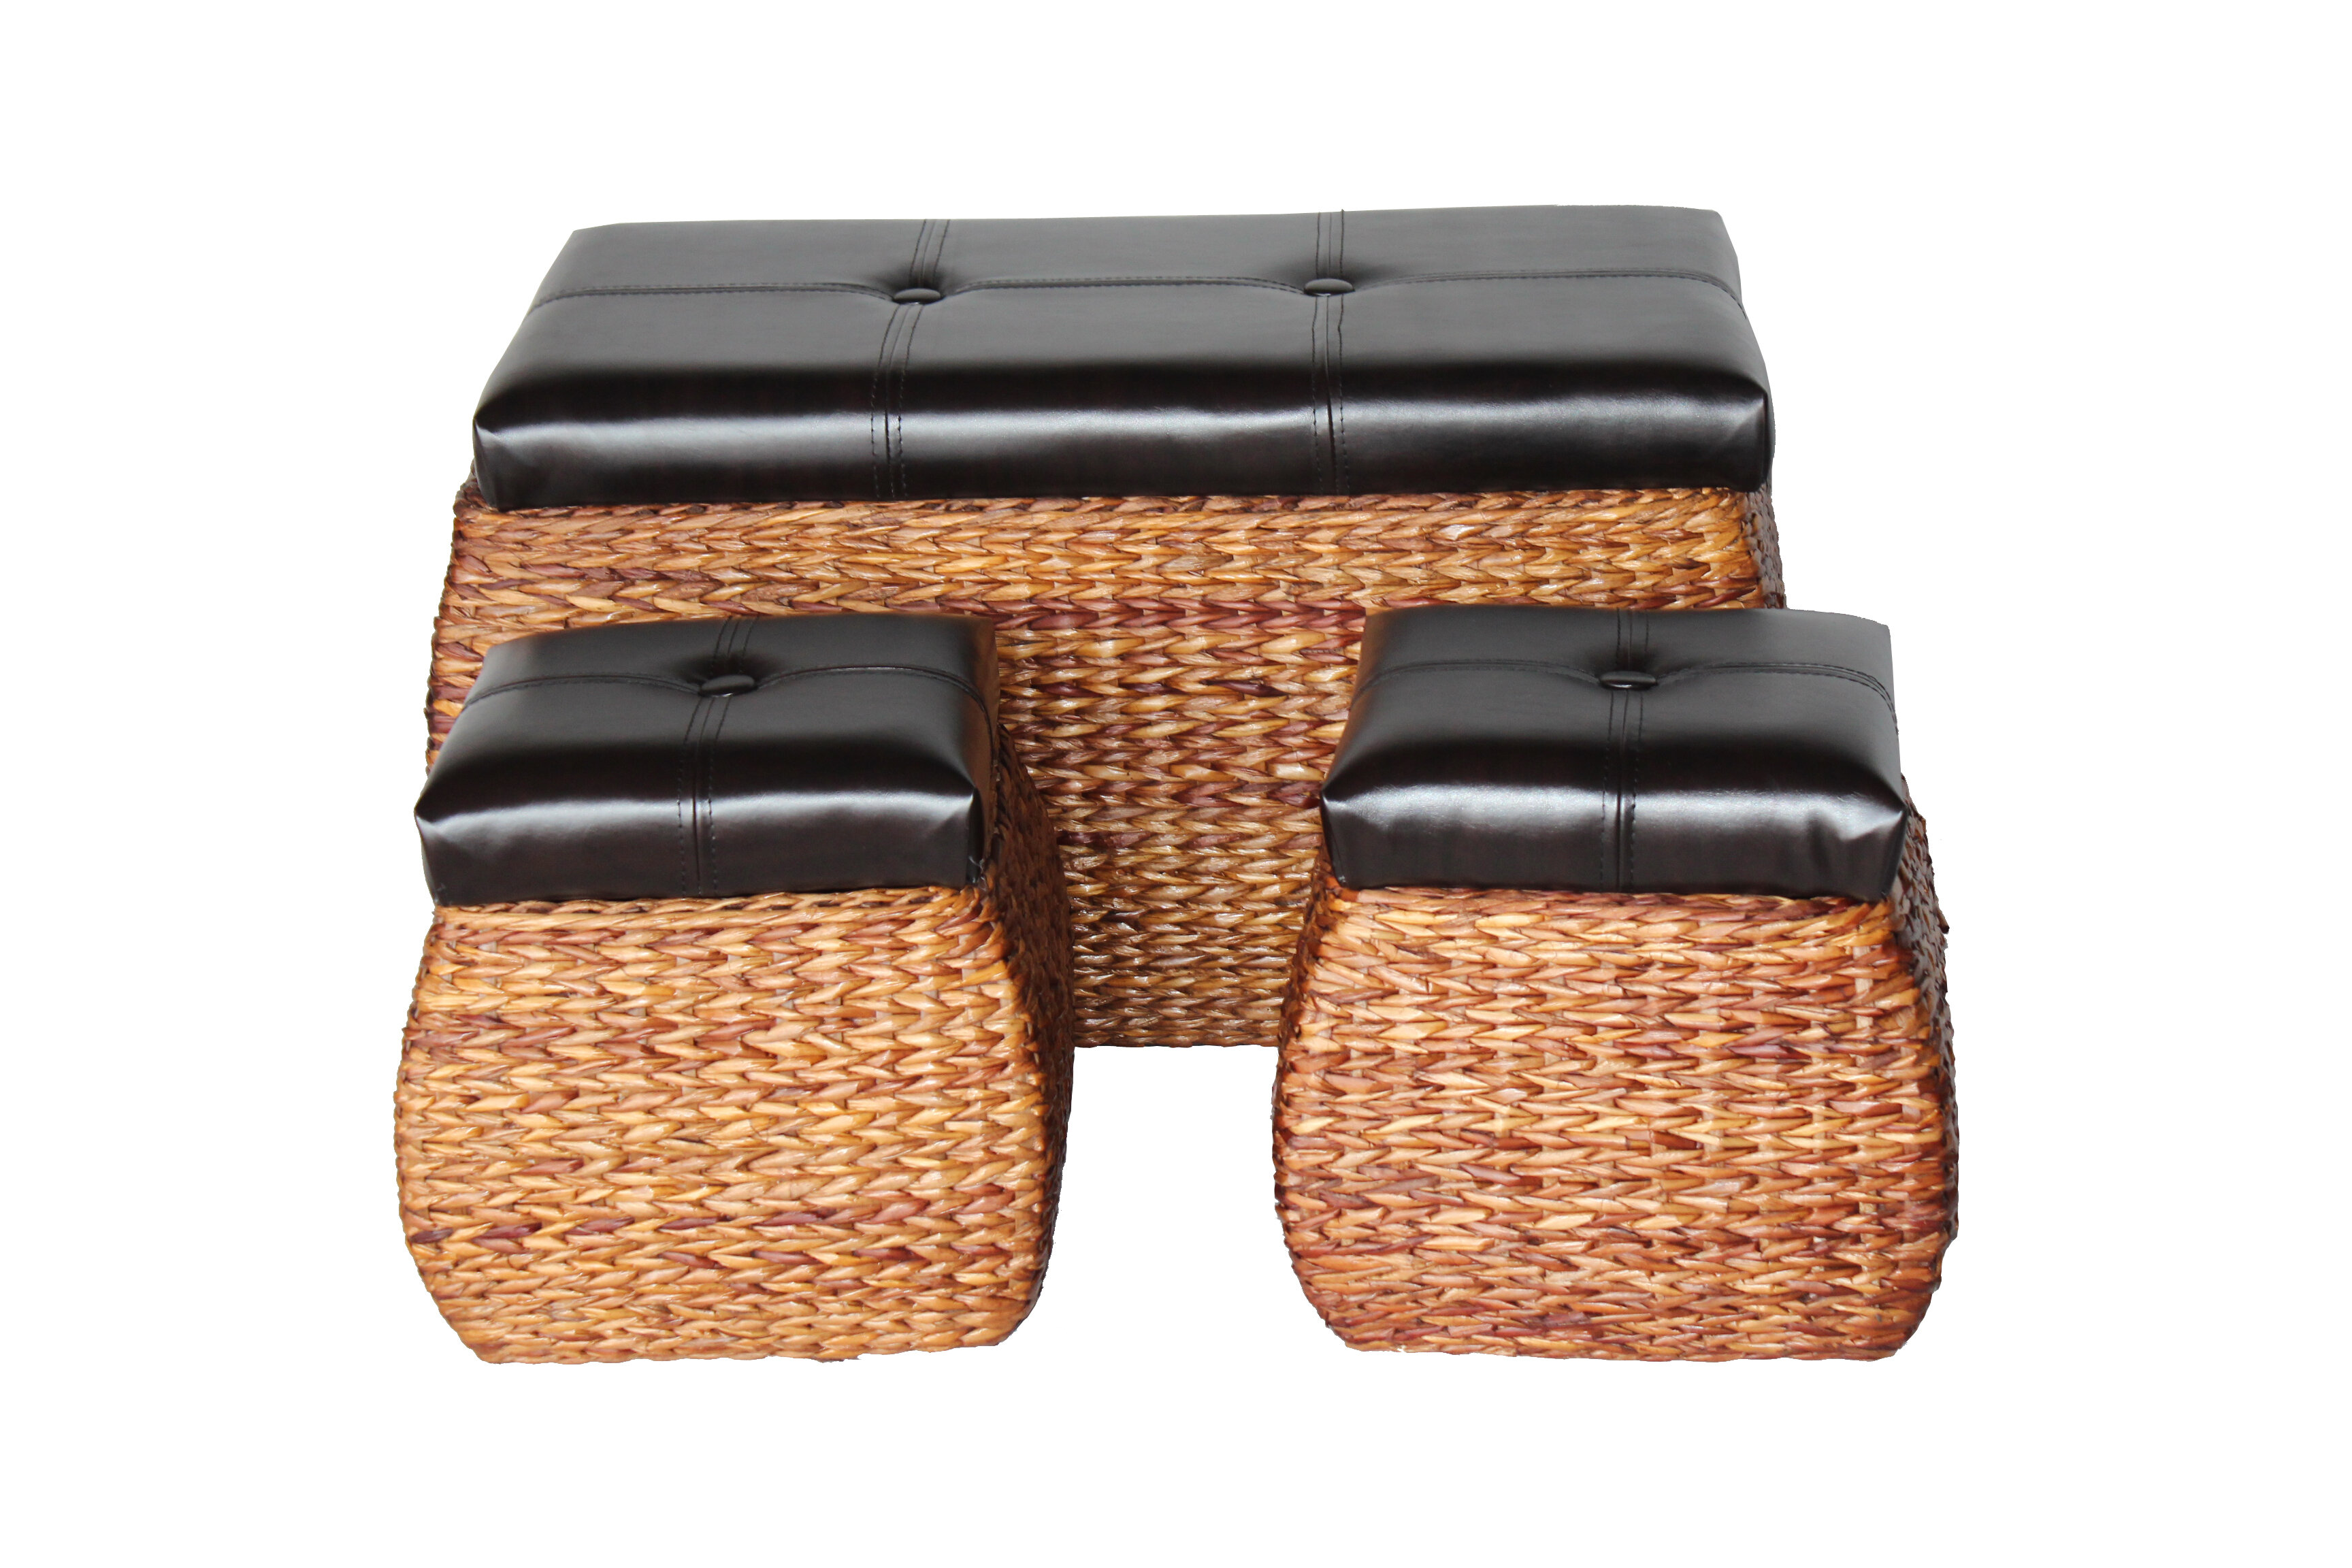 Awe Inspiring 3 Piece Storage Ottoman Set Gmtry Best Dining Table And Chair Ideas Images Gmtryco